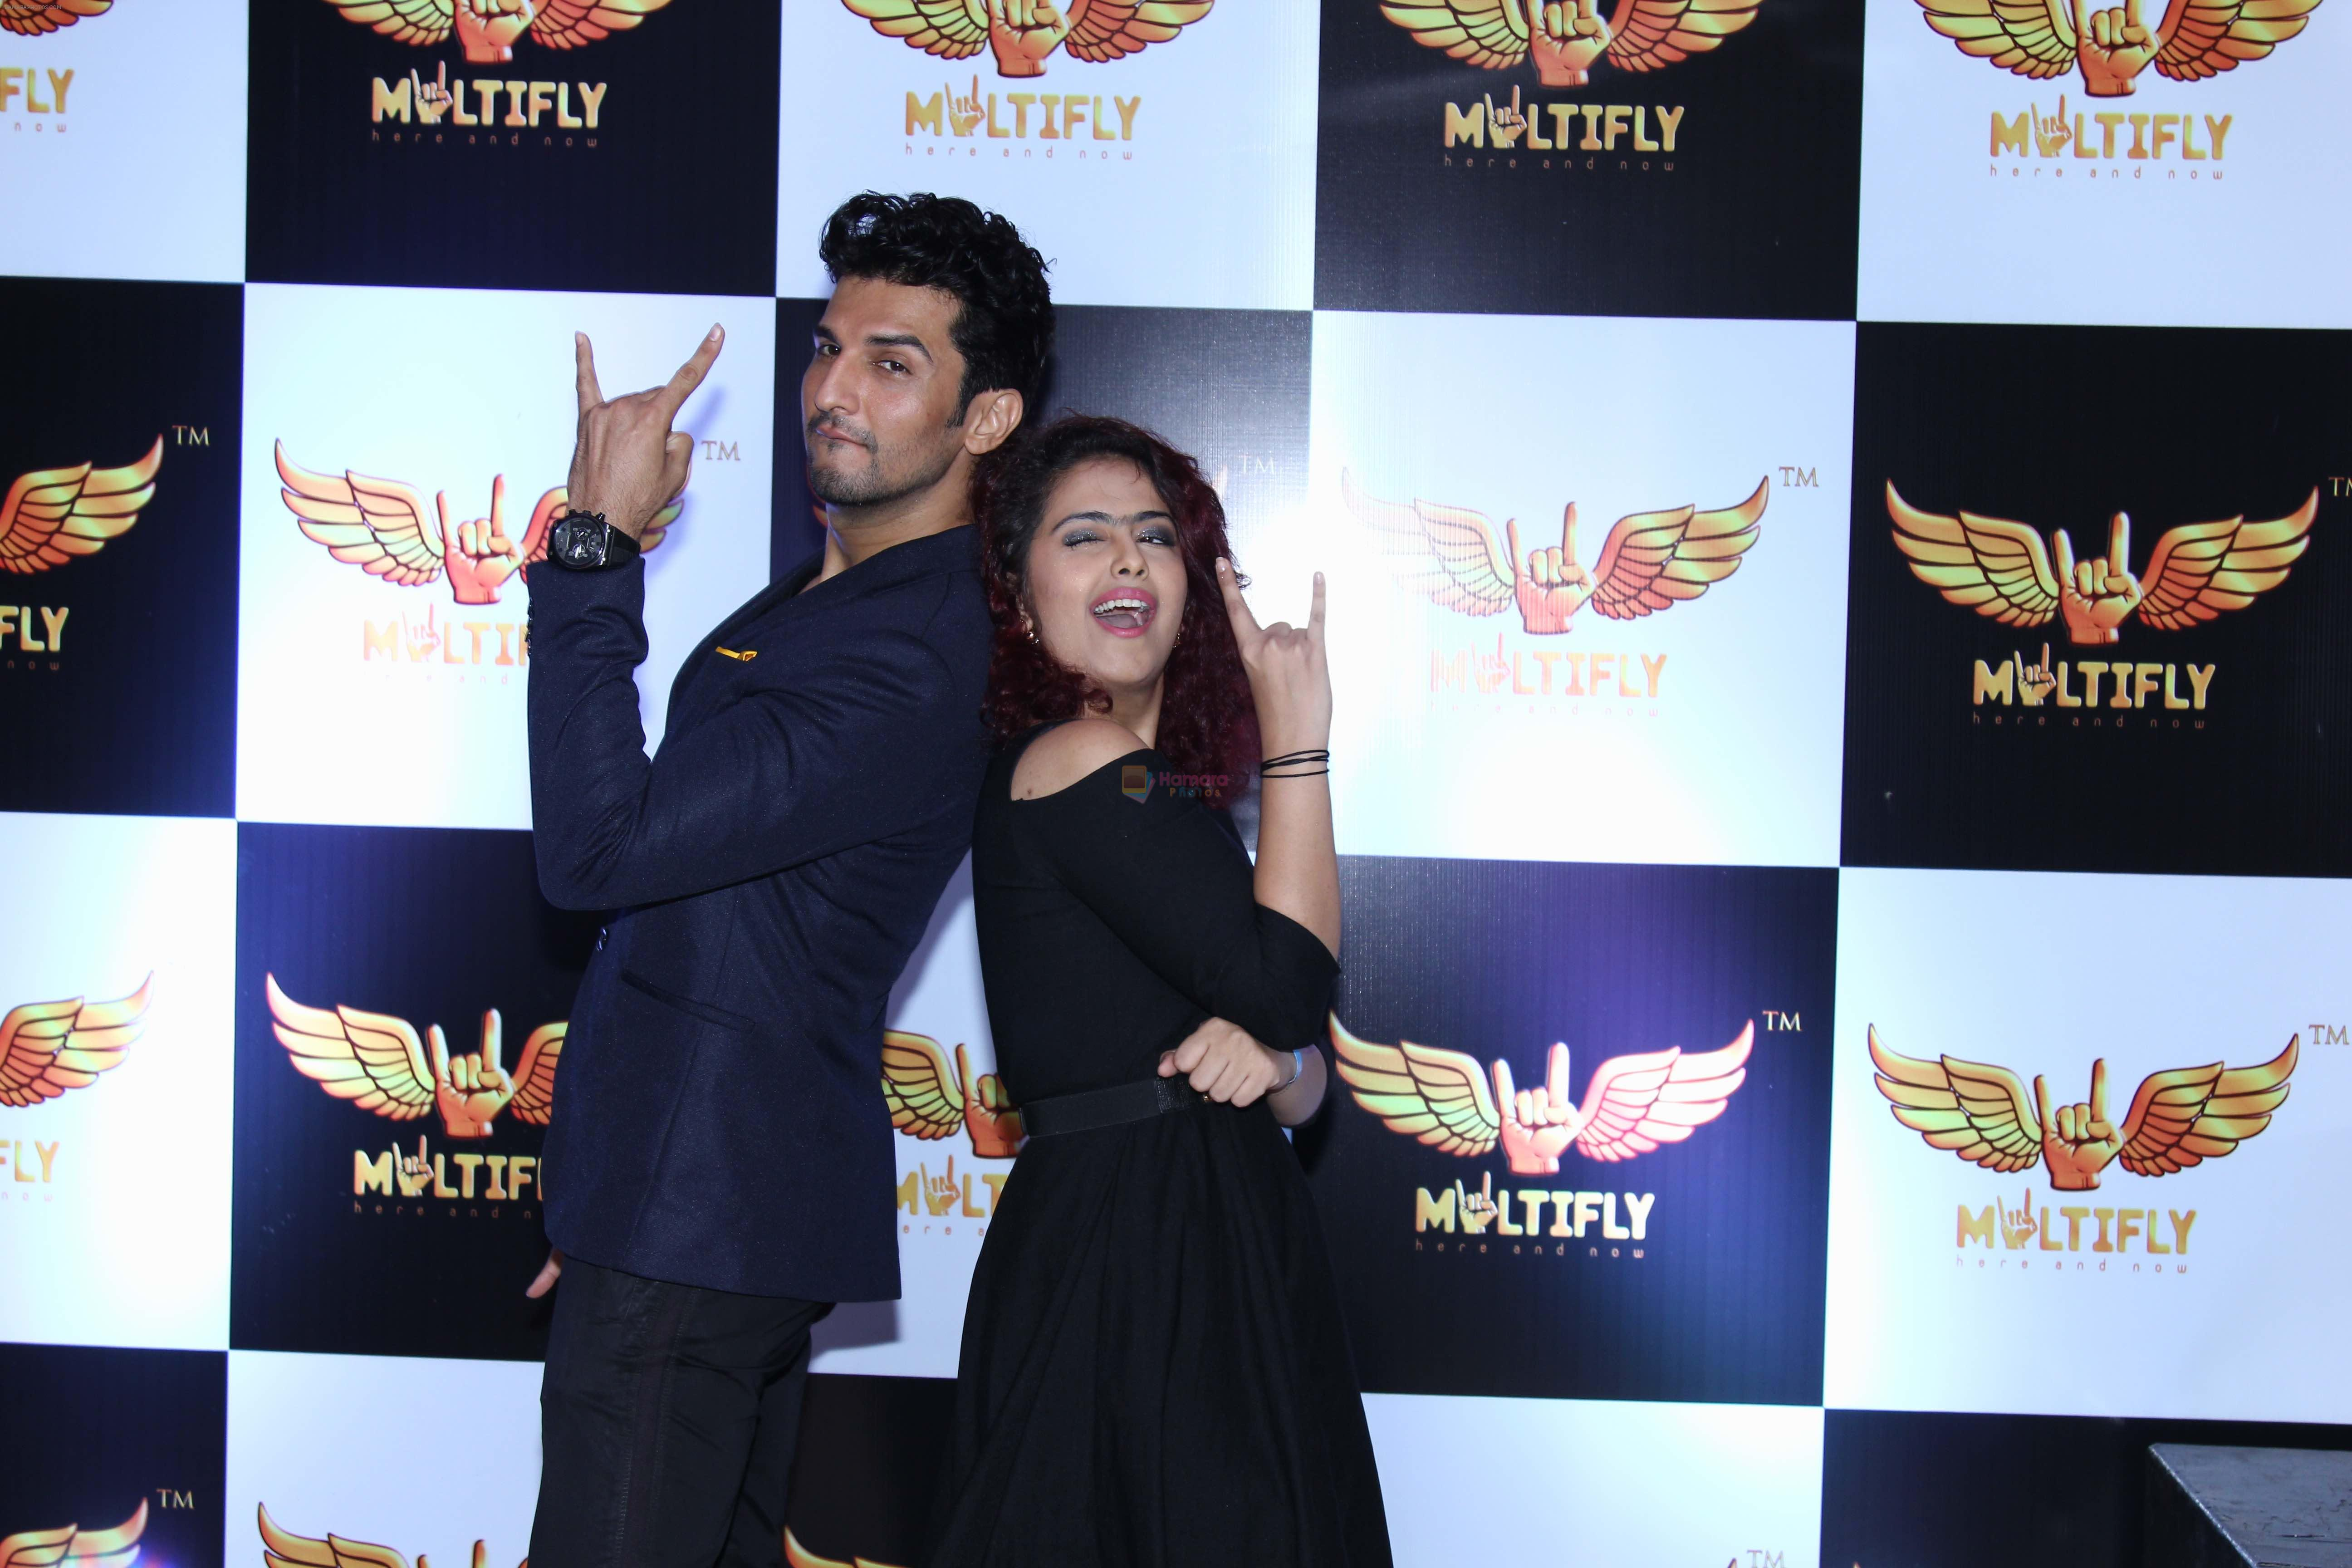 Manish Raisinghan and Avika Gor announce his latest project - Multify on 12th Oct 2016